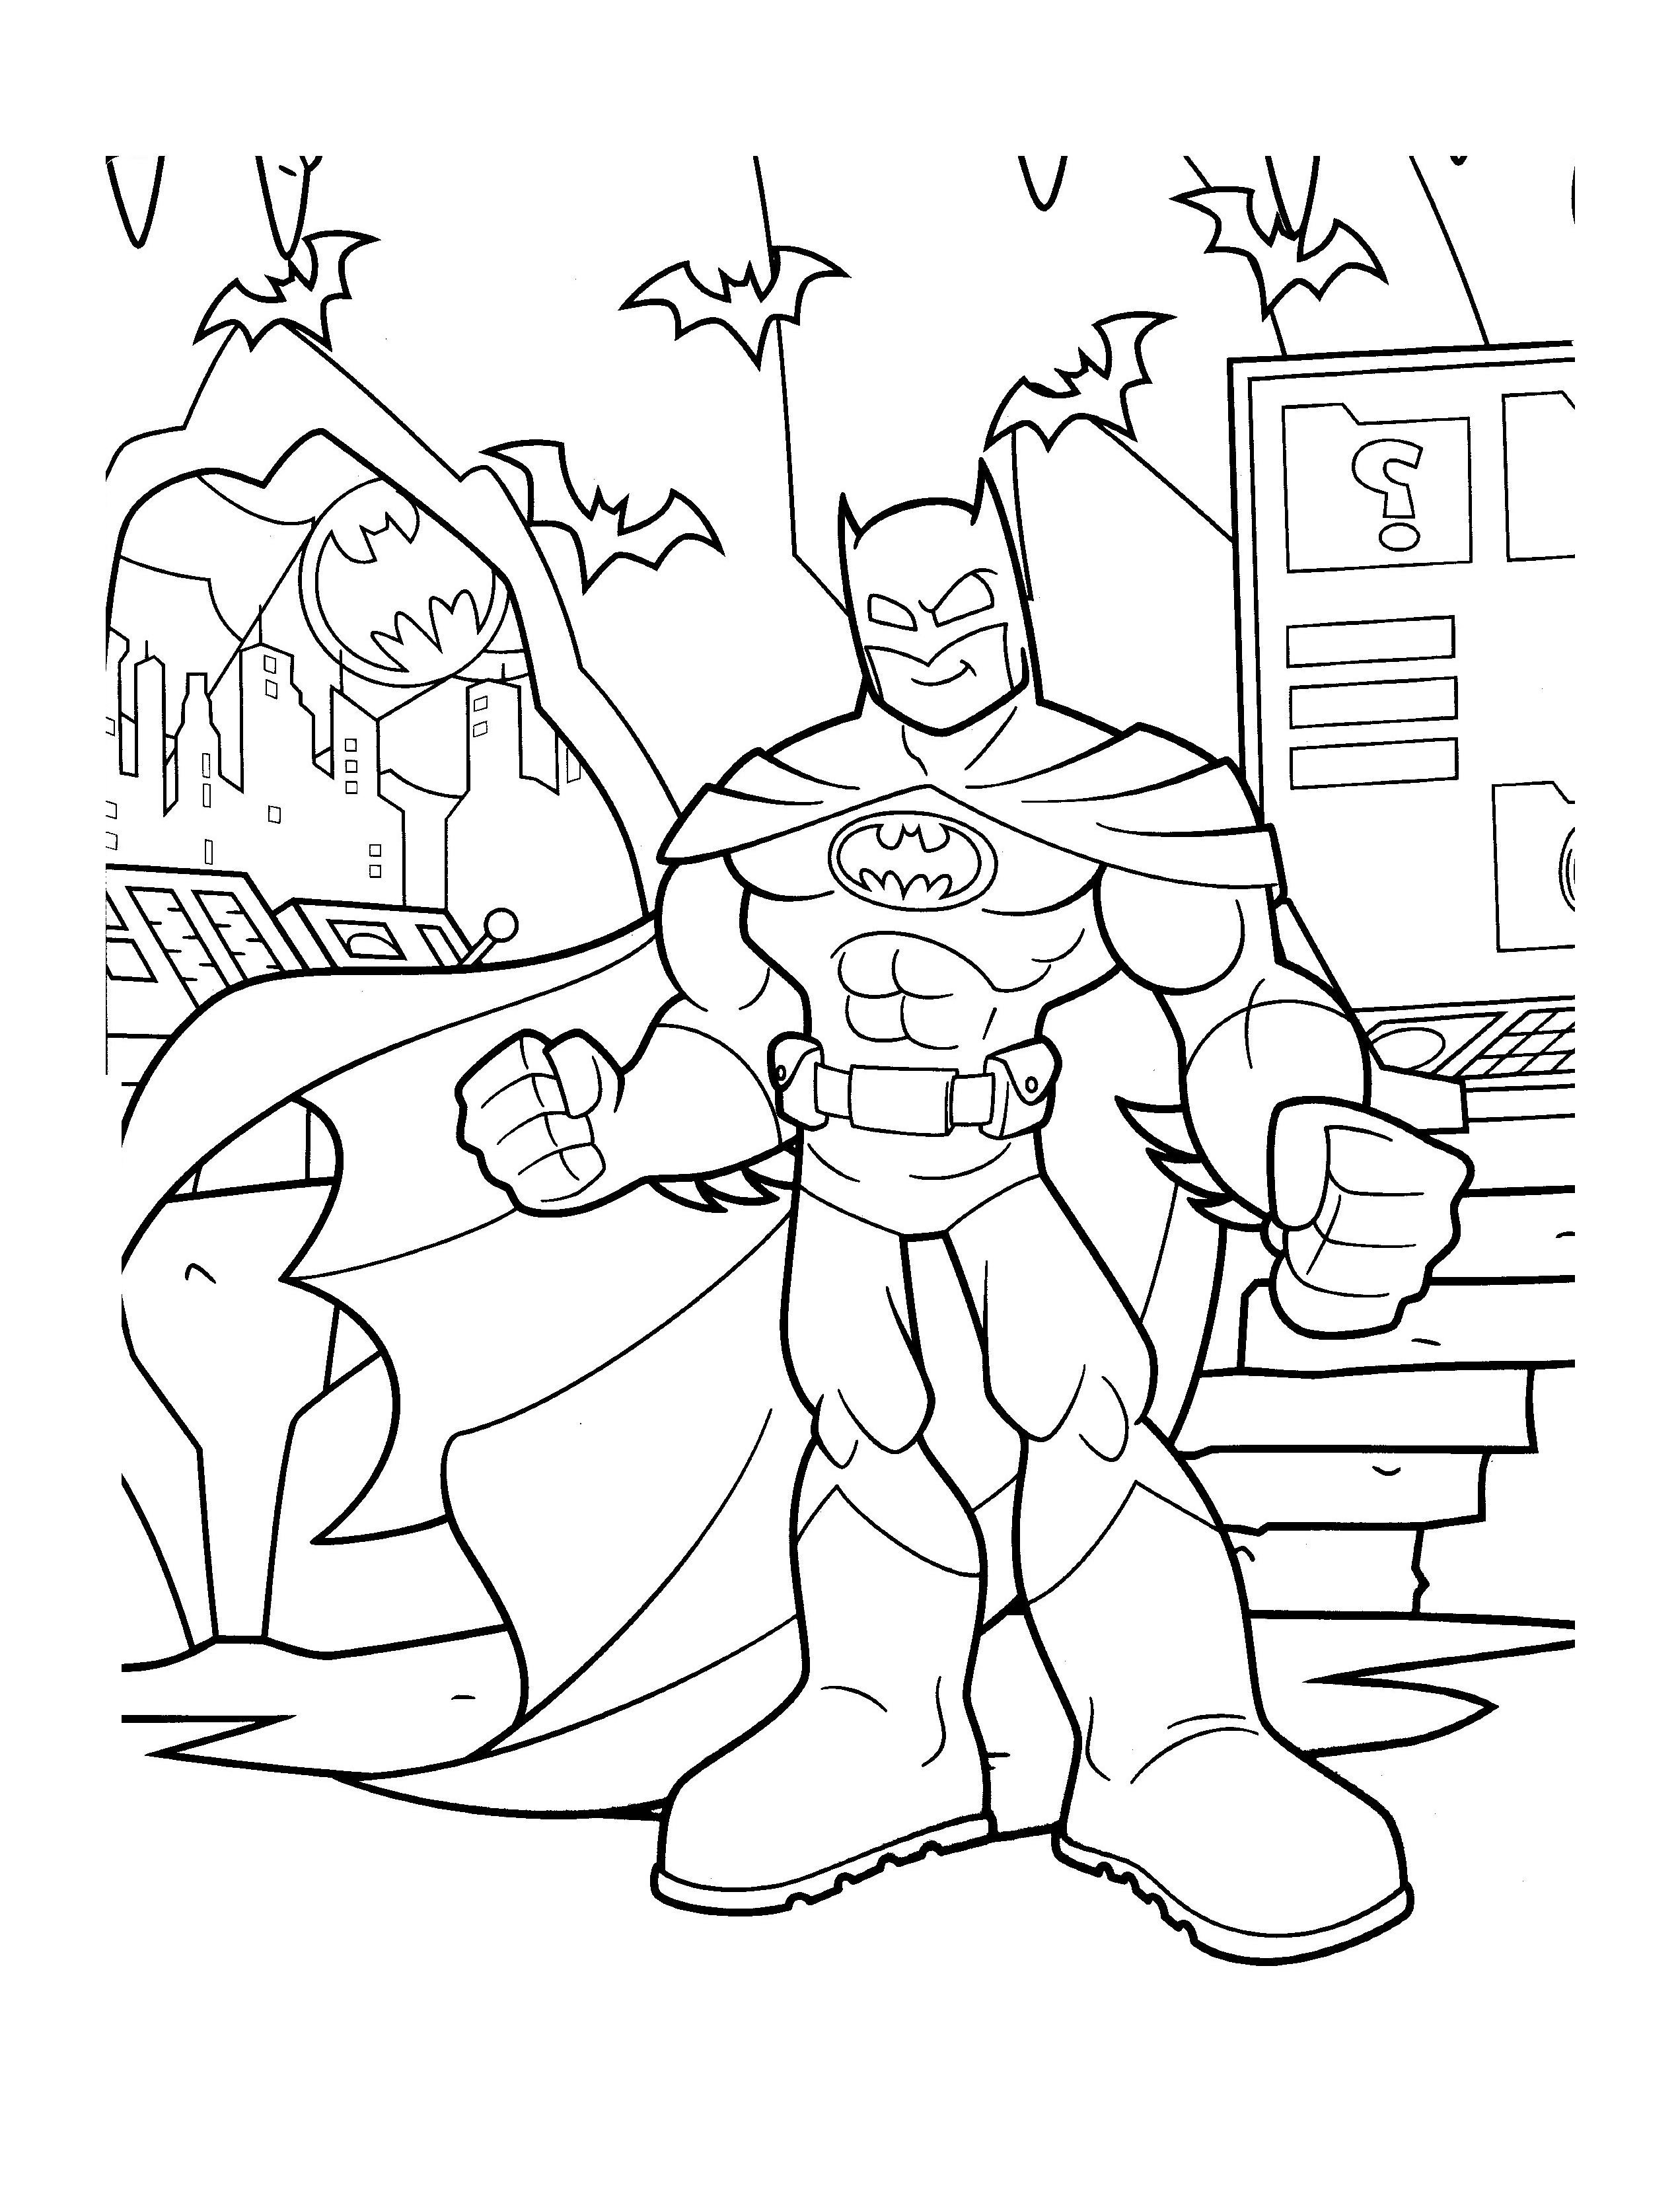 Batman To Print For Free Batman Kids Coloring Pages